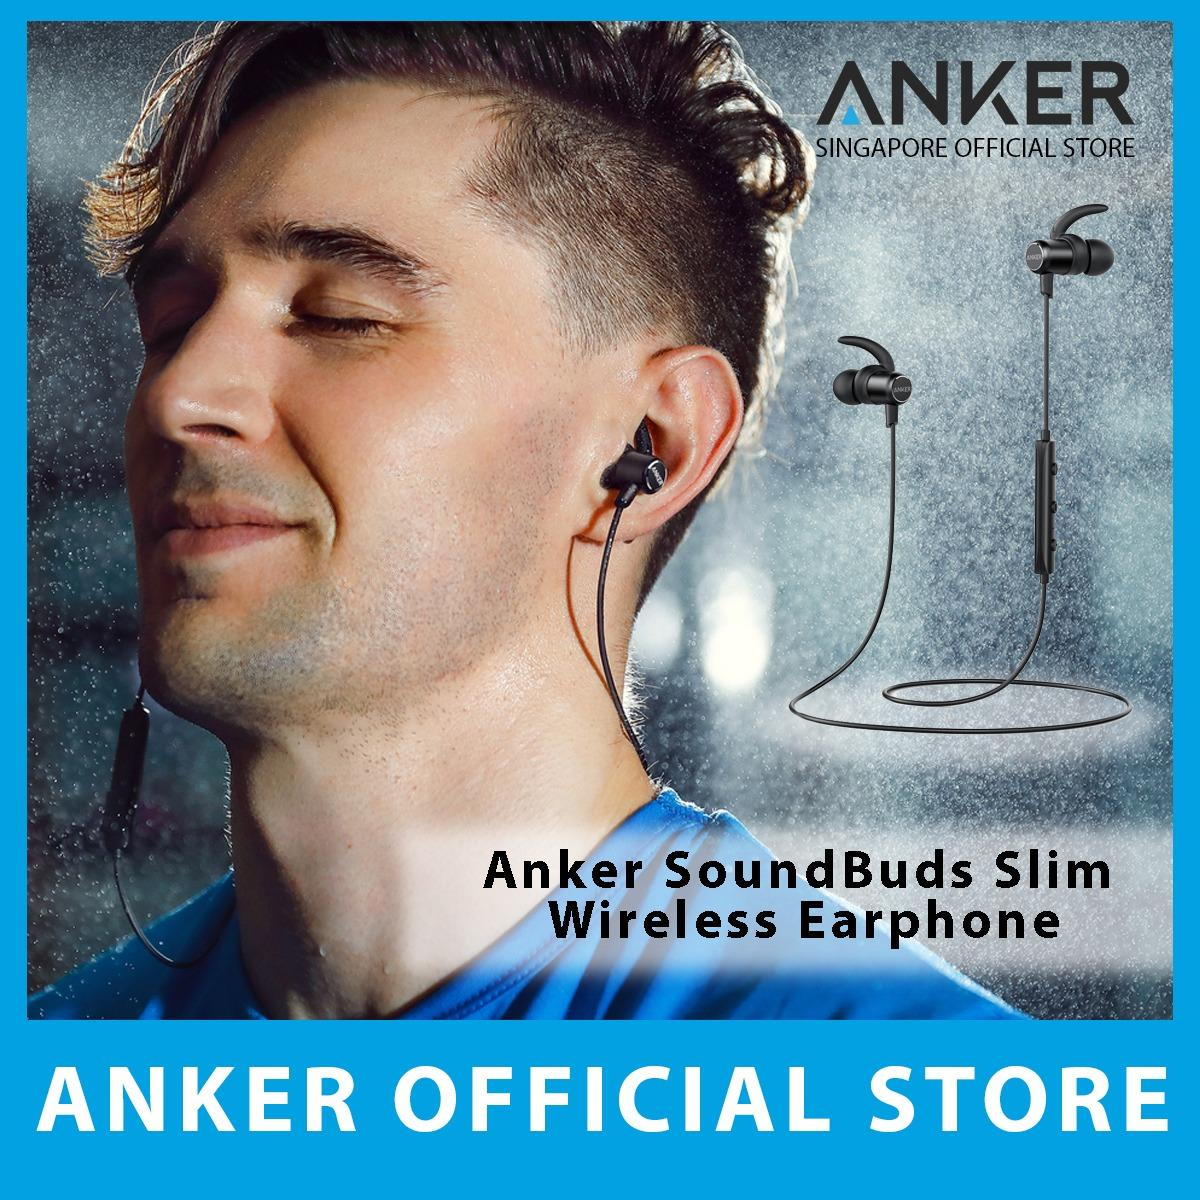 Anker Soundbuds Slim Bluetooth Earphone Review